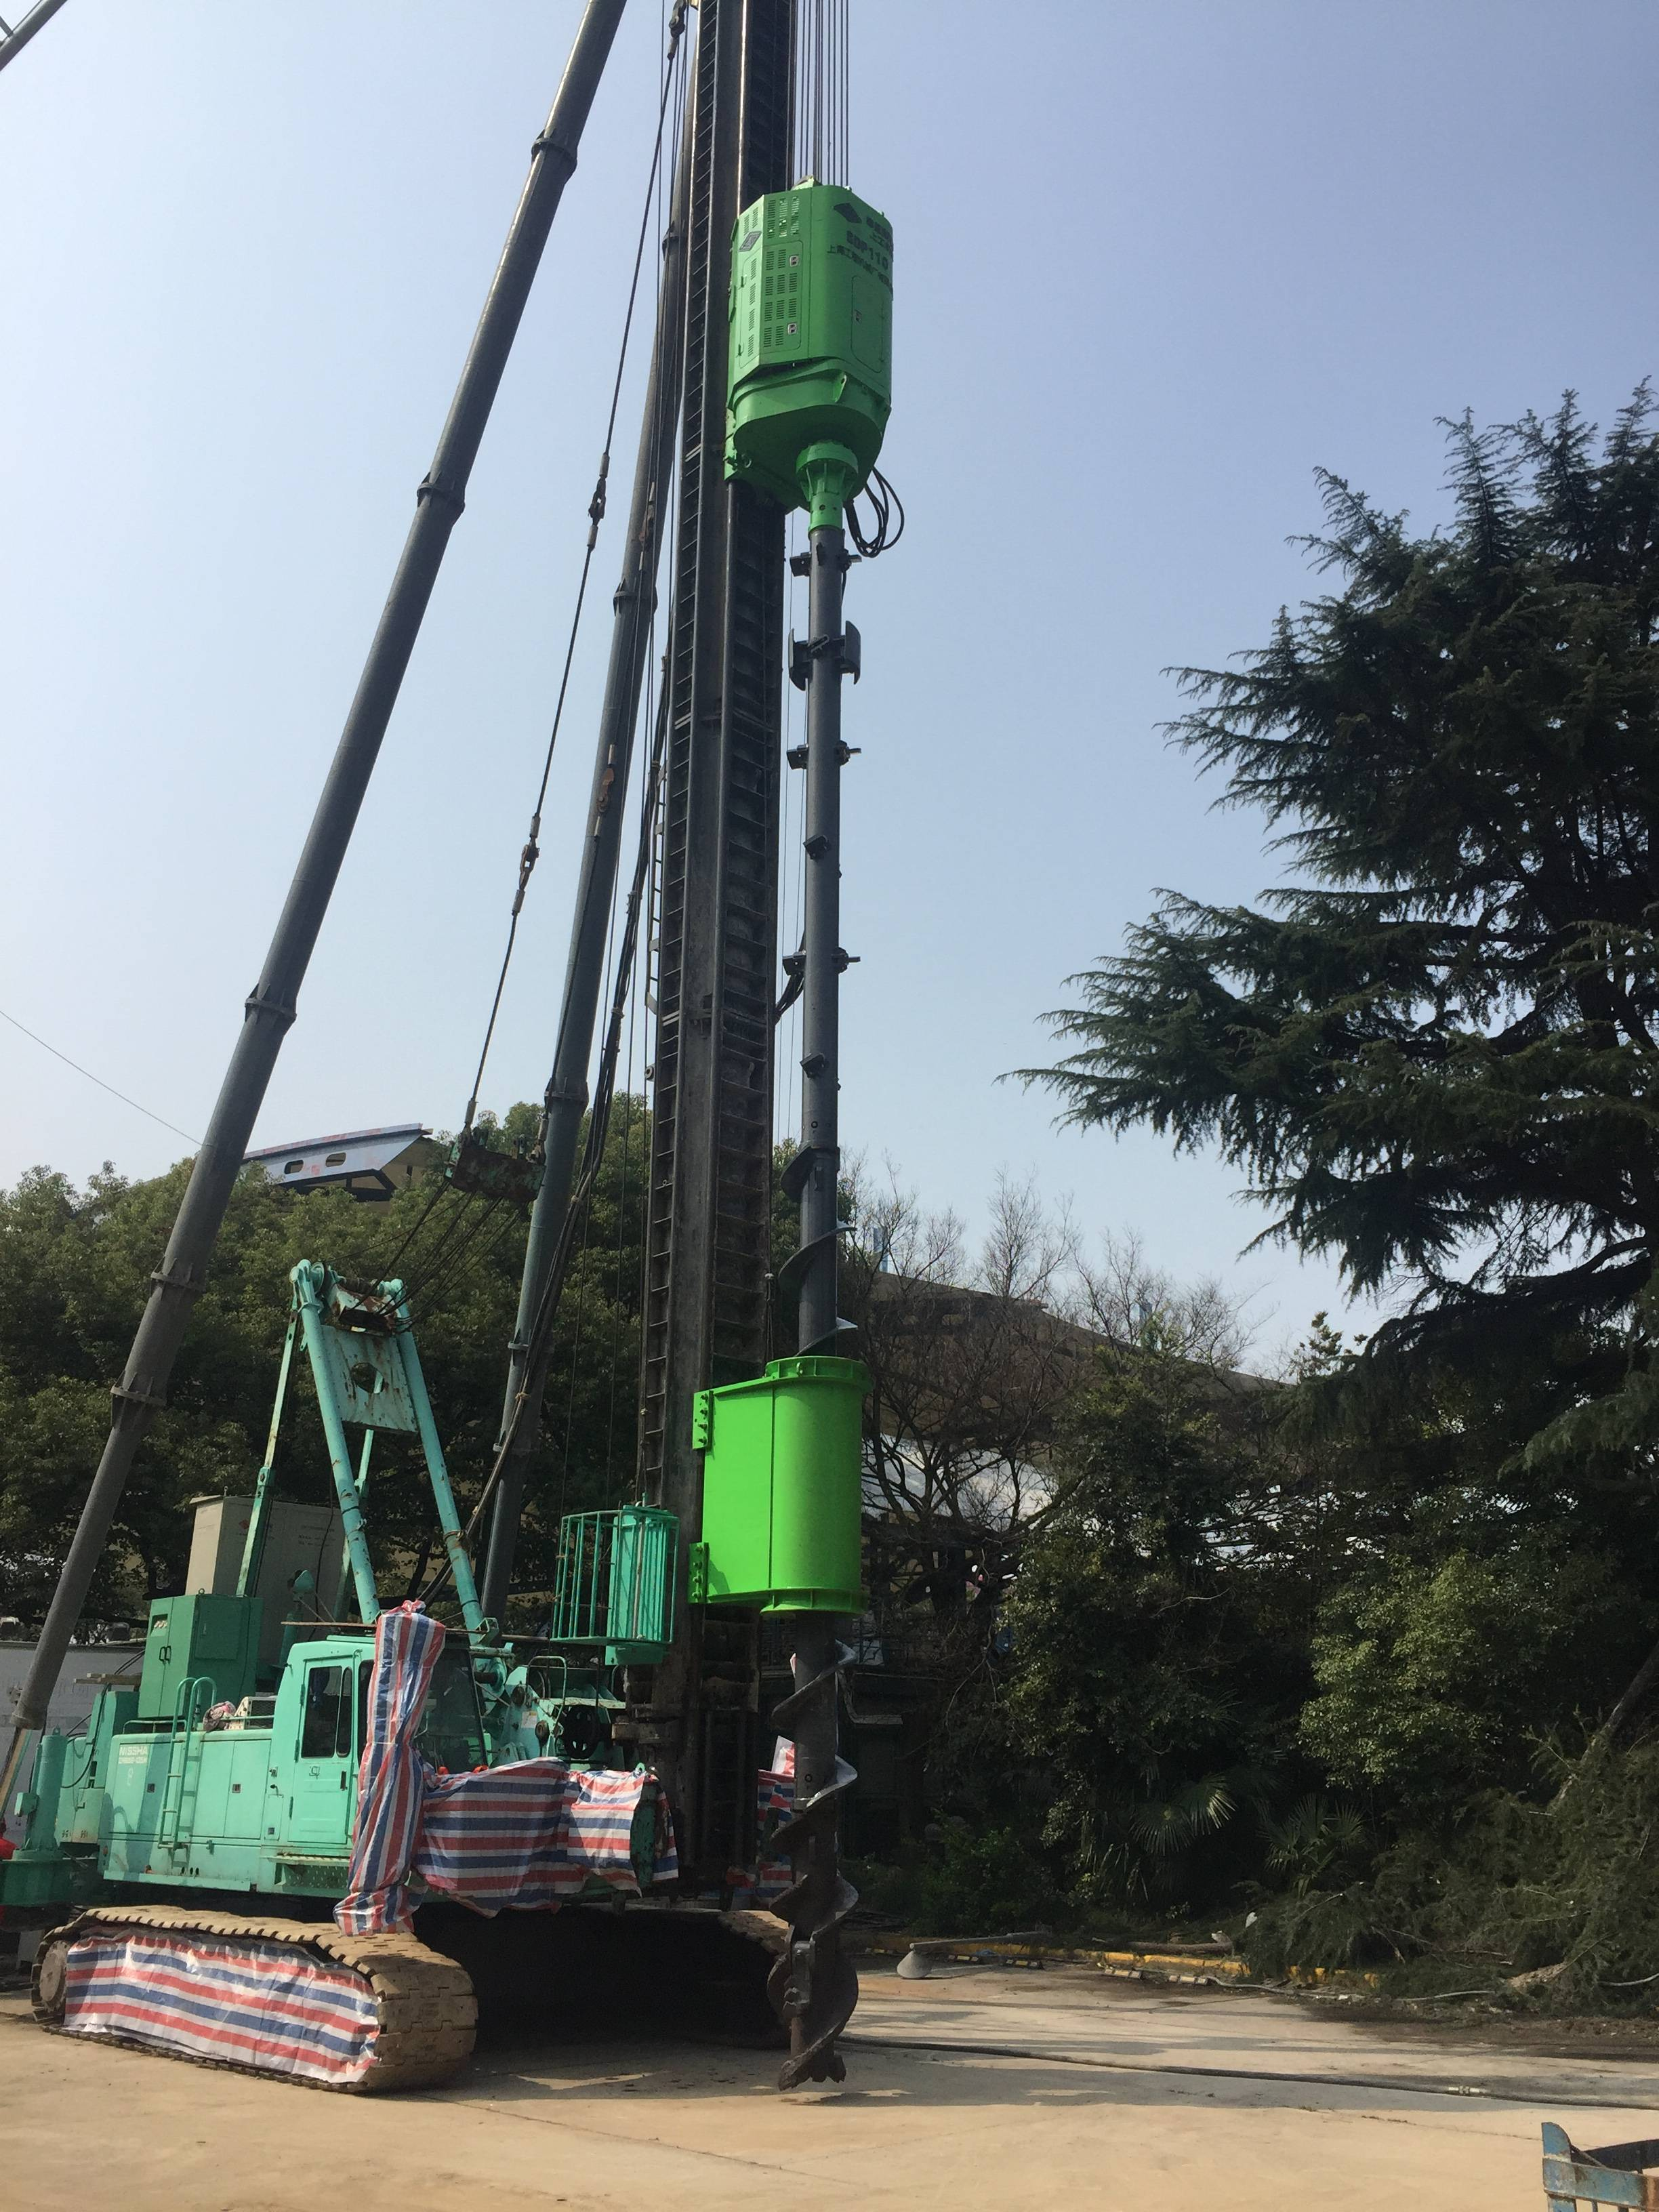 2019 Good Quality Semw Sdp110h Pre-Bored Pre-Cast Piling Equipment - Pre-bored Pre-cast Piling Equipment – Engineering Machinery